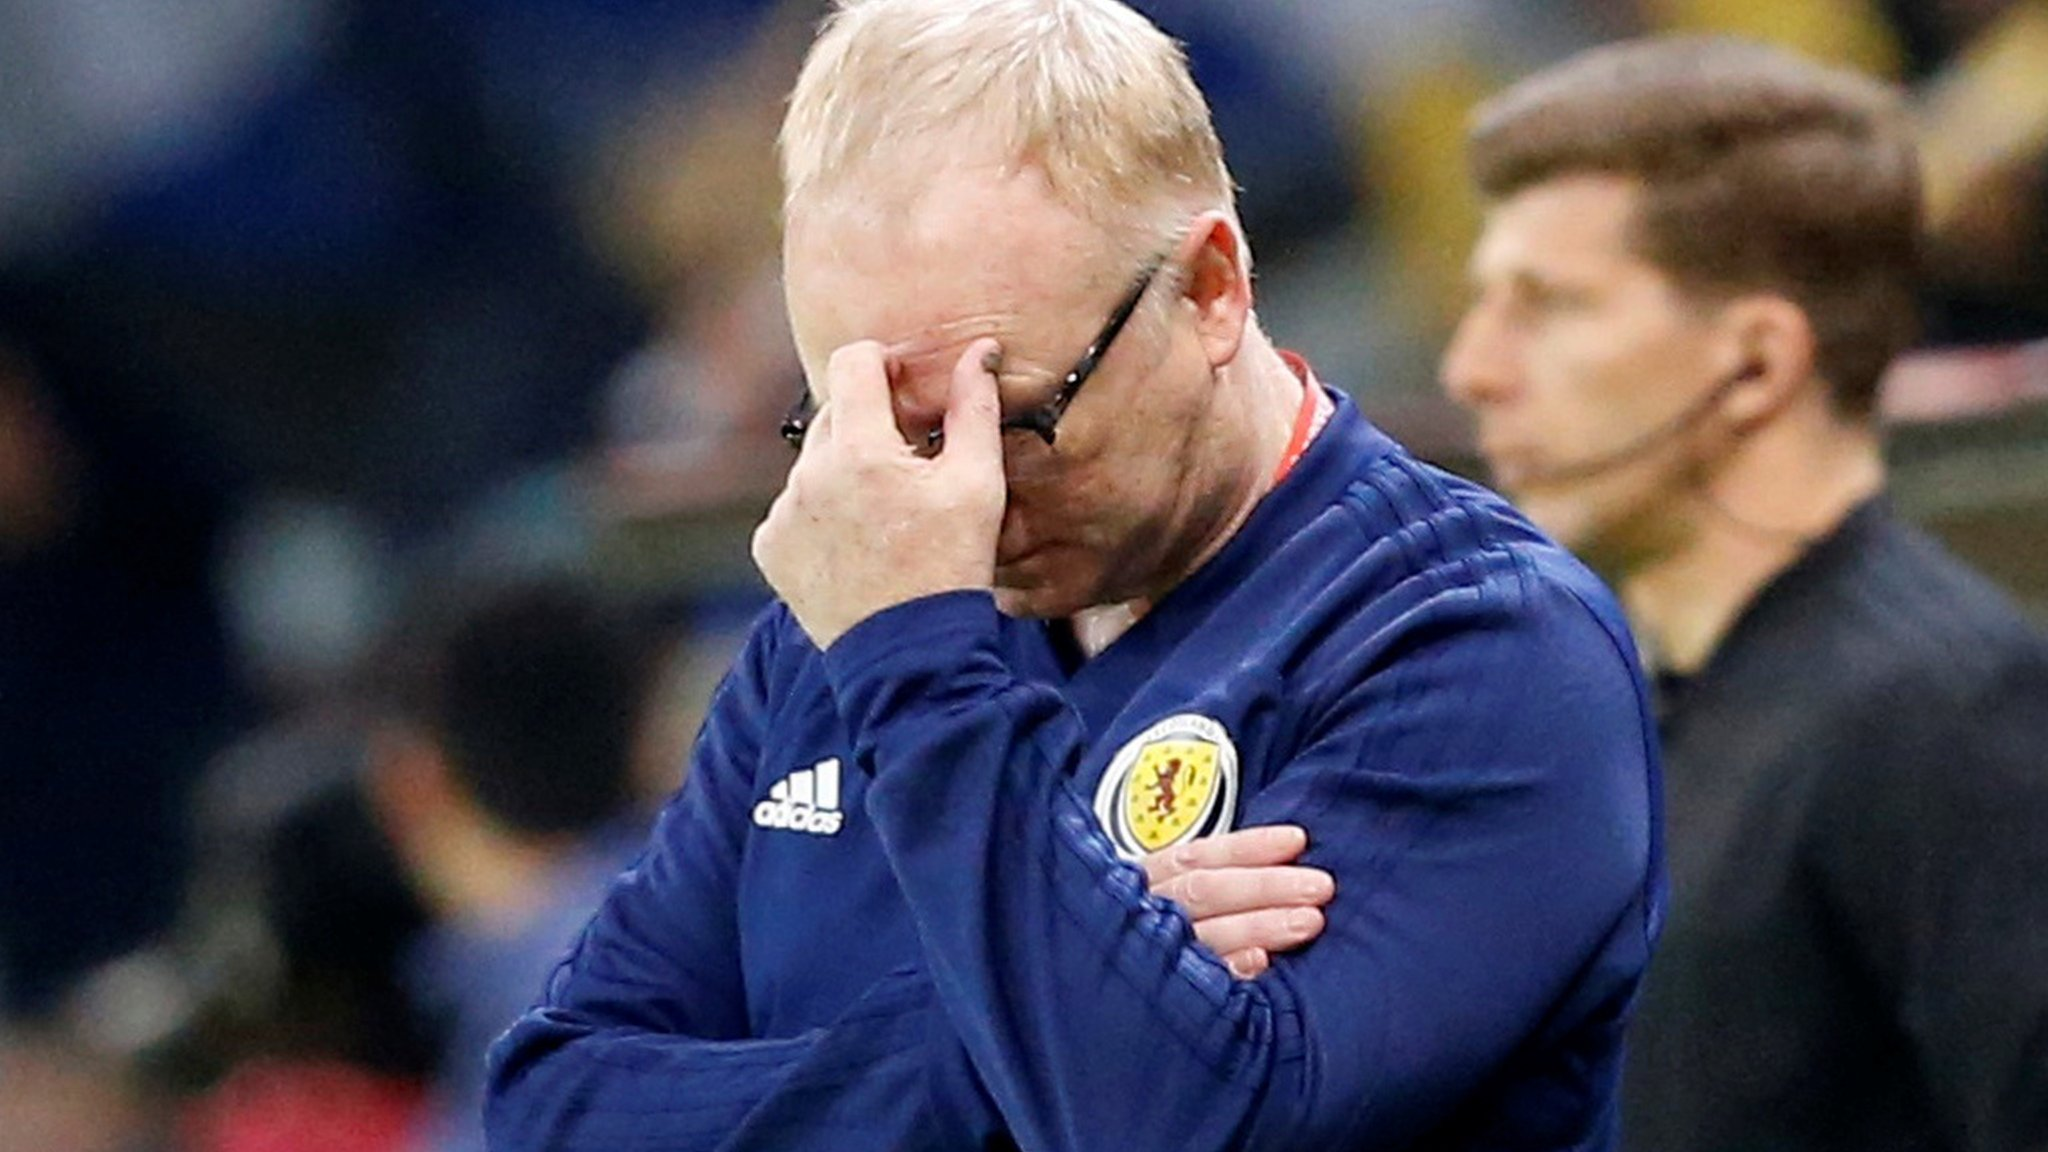 Kazakhstan 3-0 Scotland: Alex McLeish refuses to discuss future